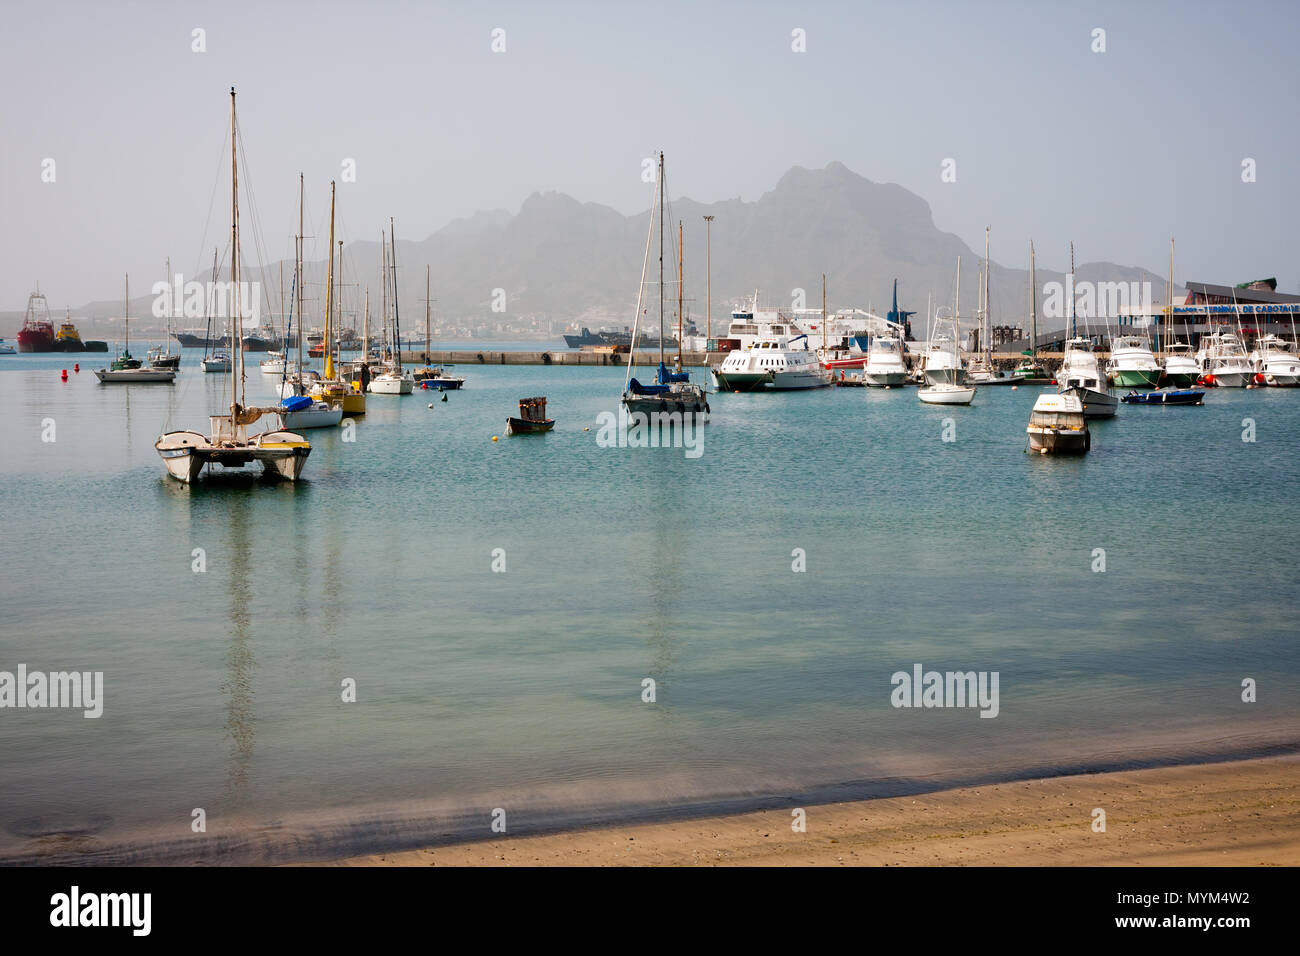 MINDELO, CAPE VERDE - DECEMBER 07, 2015: Boats and yachts in Marina of Sao Vicente island. Visible Face Mountian Stock Photo